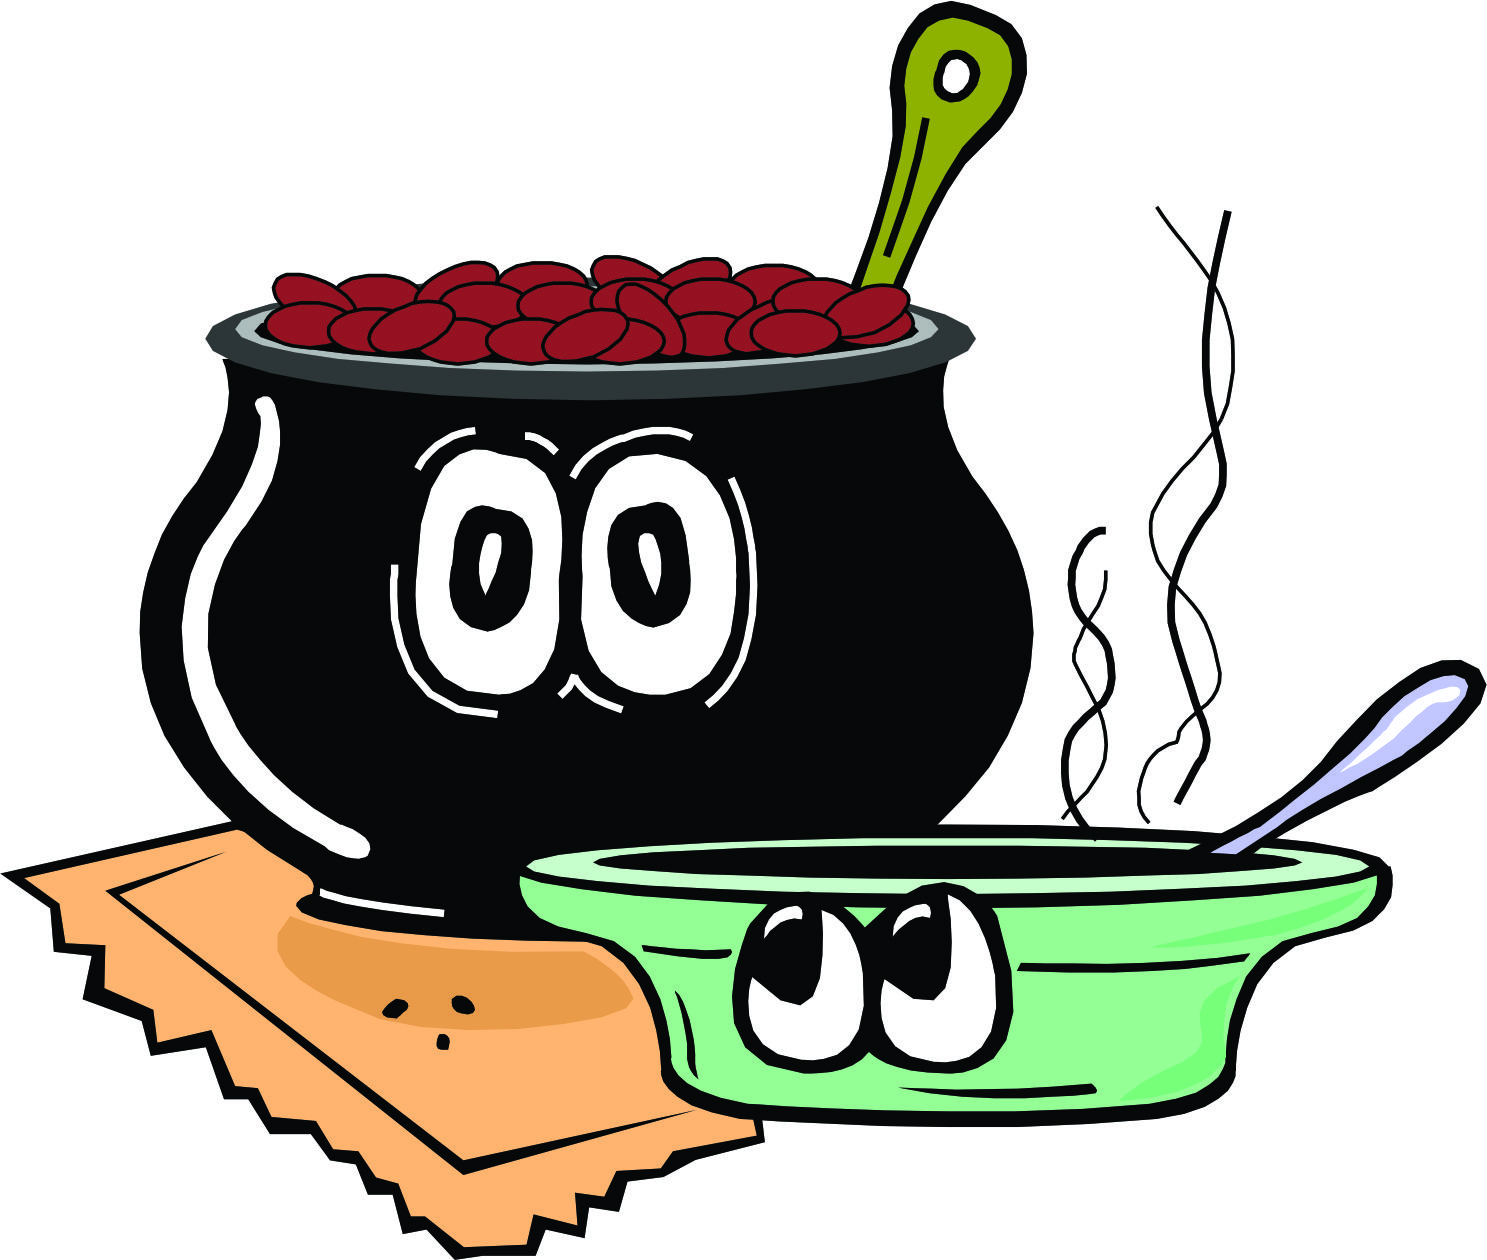 Cartoon Images Of Food - Cliparts.co